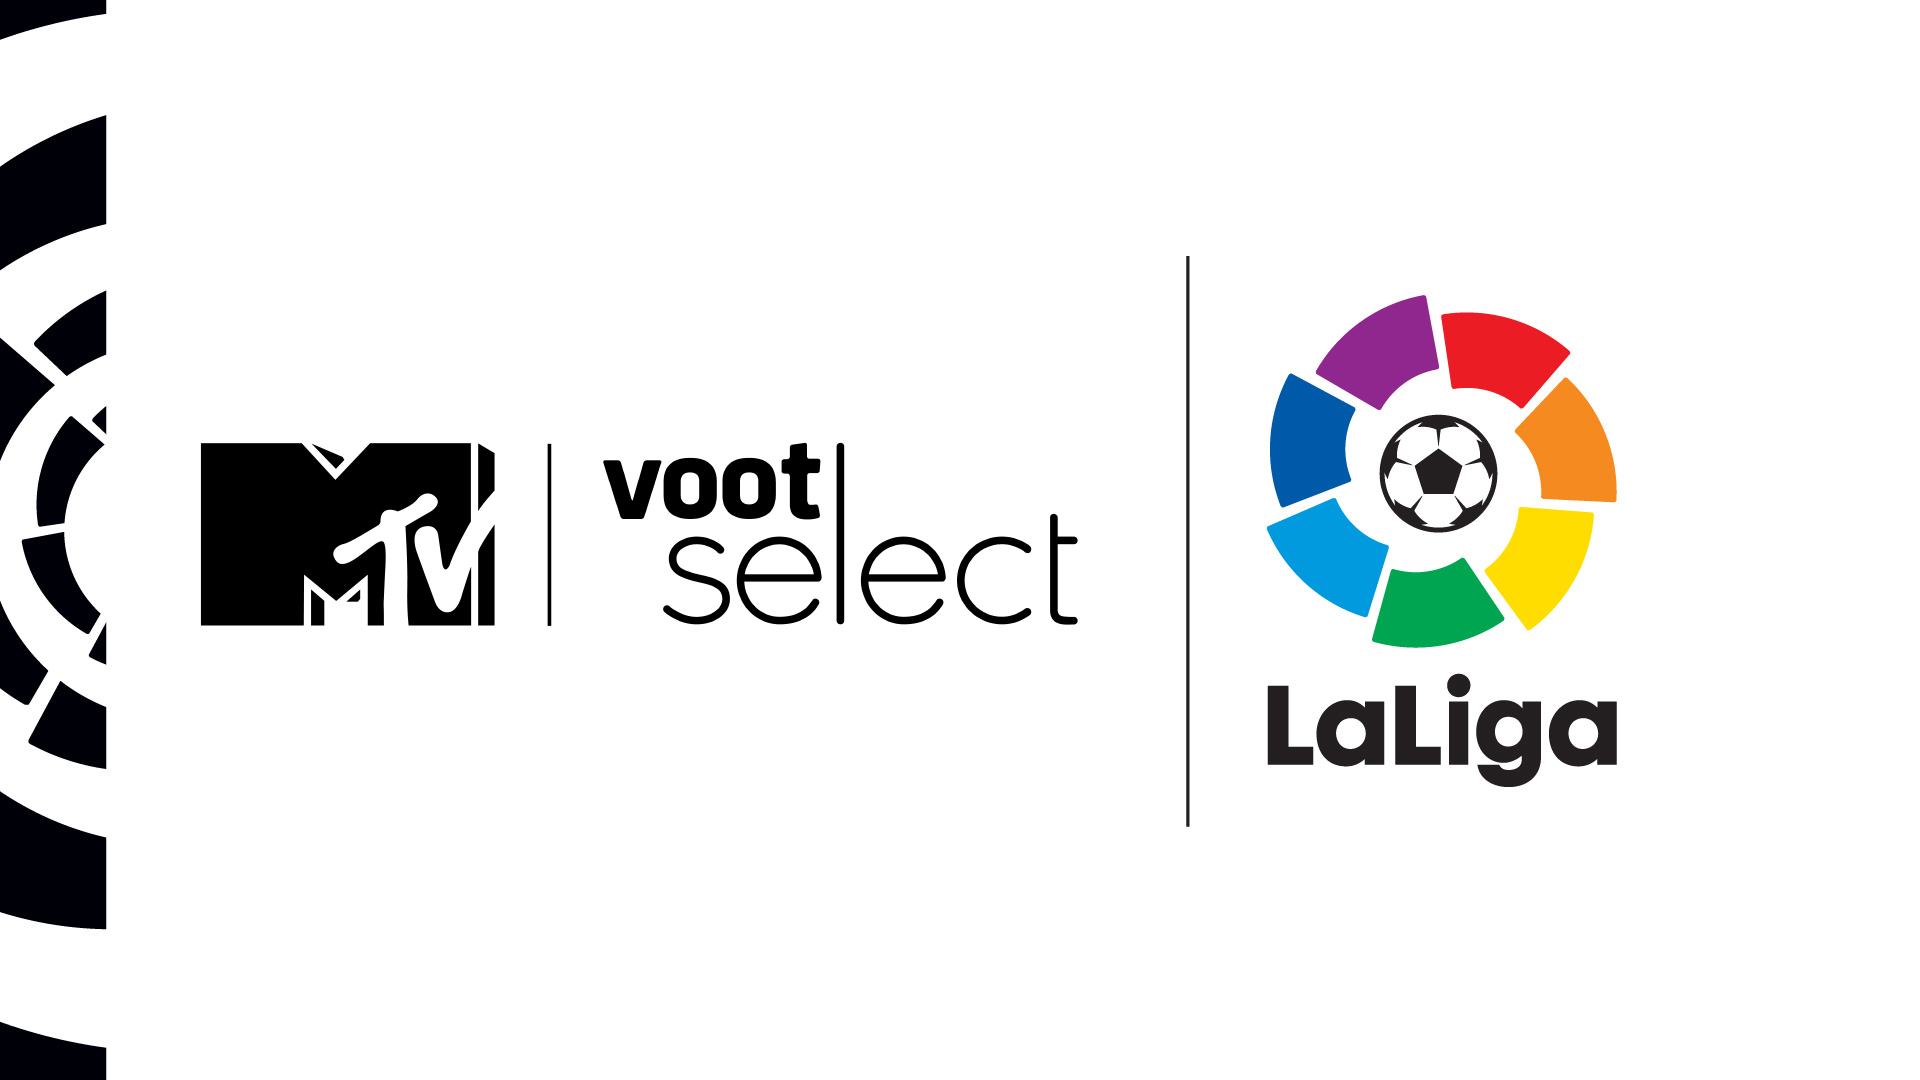 38% LaLiga viewership on MTV is from rural India